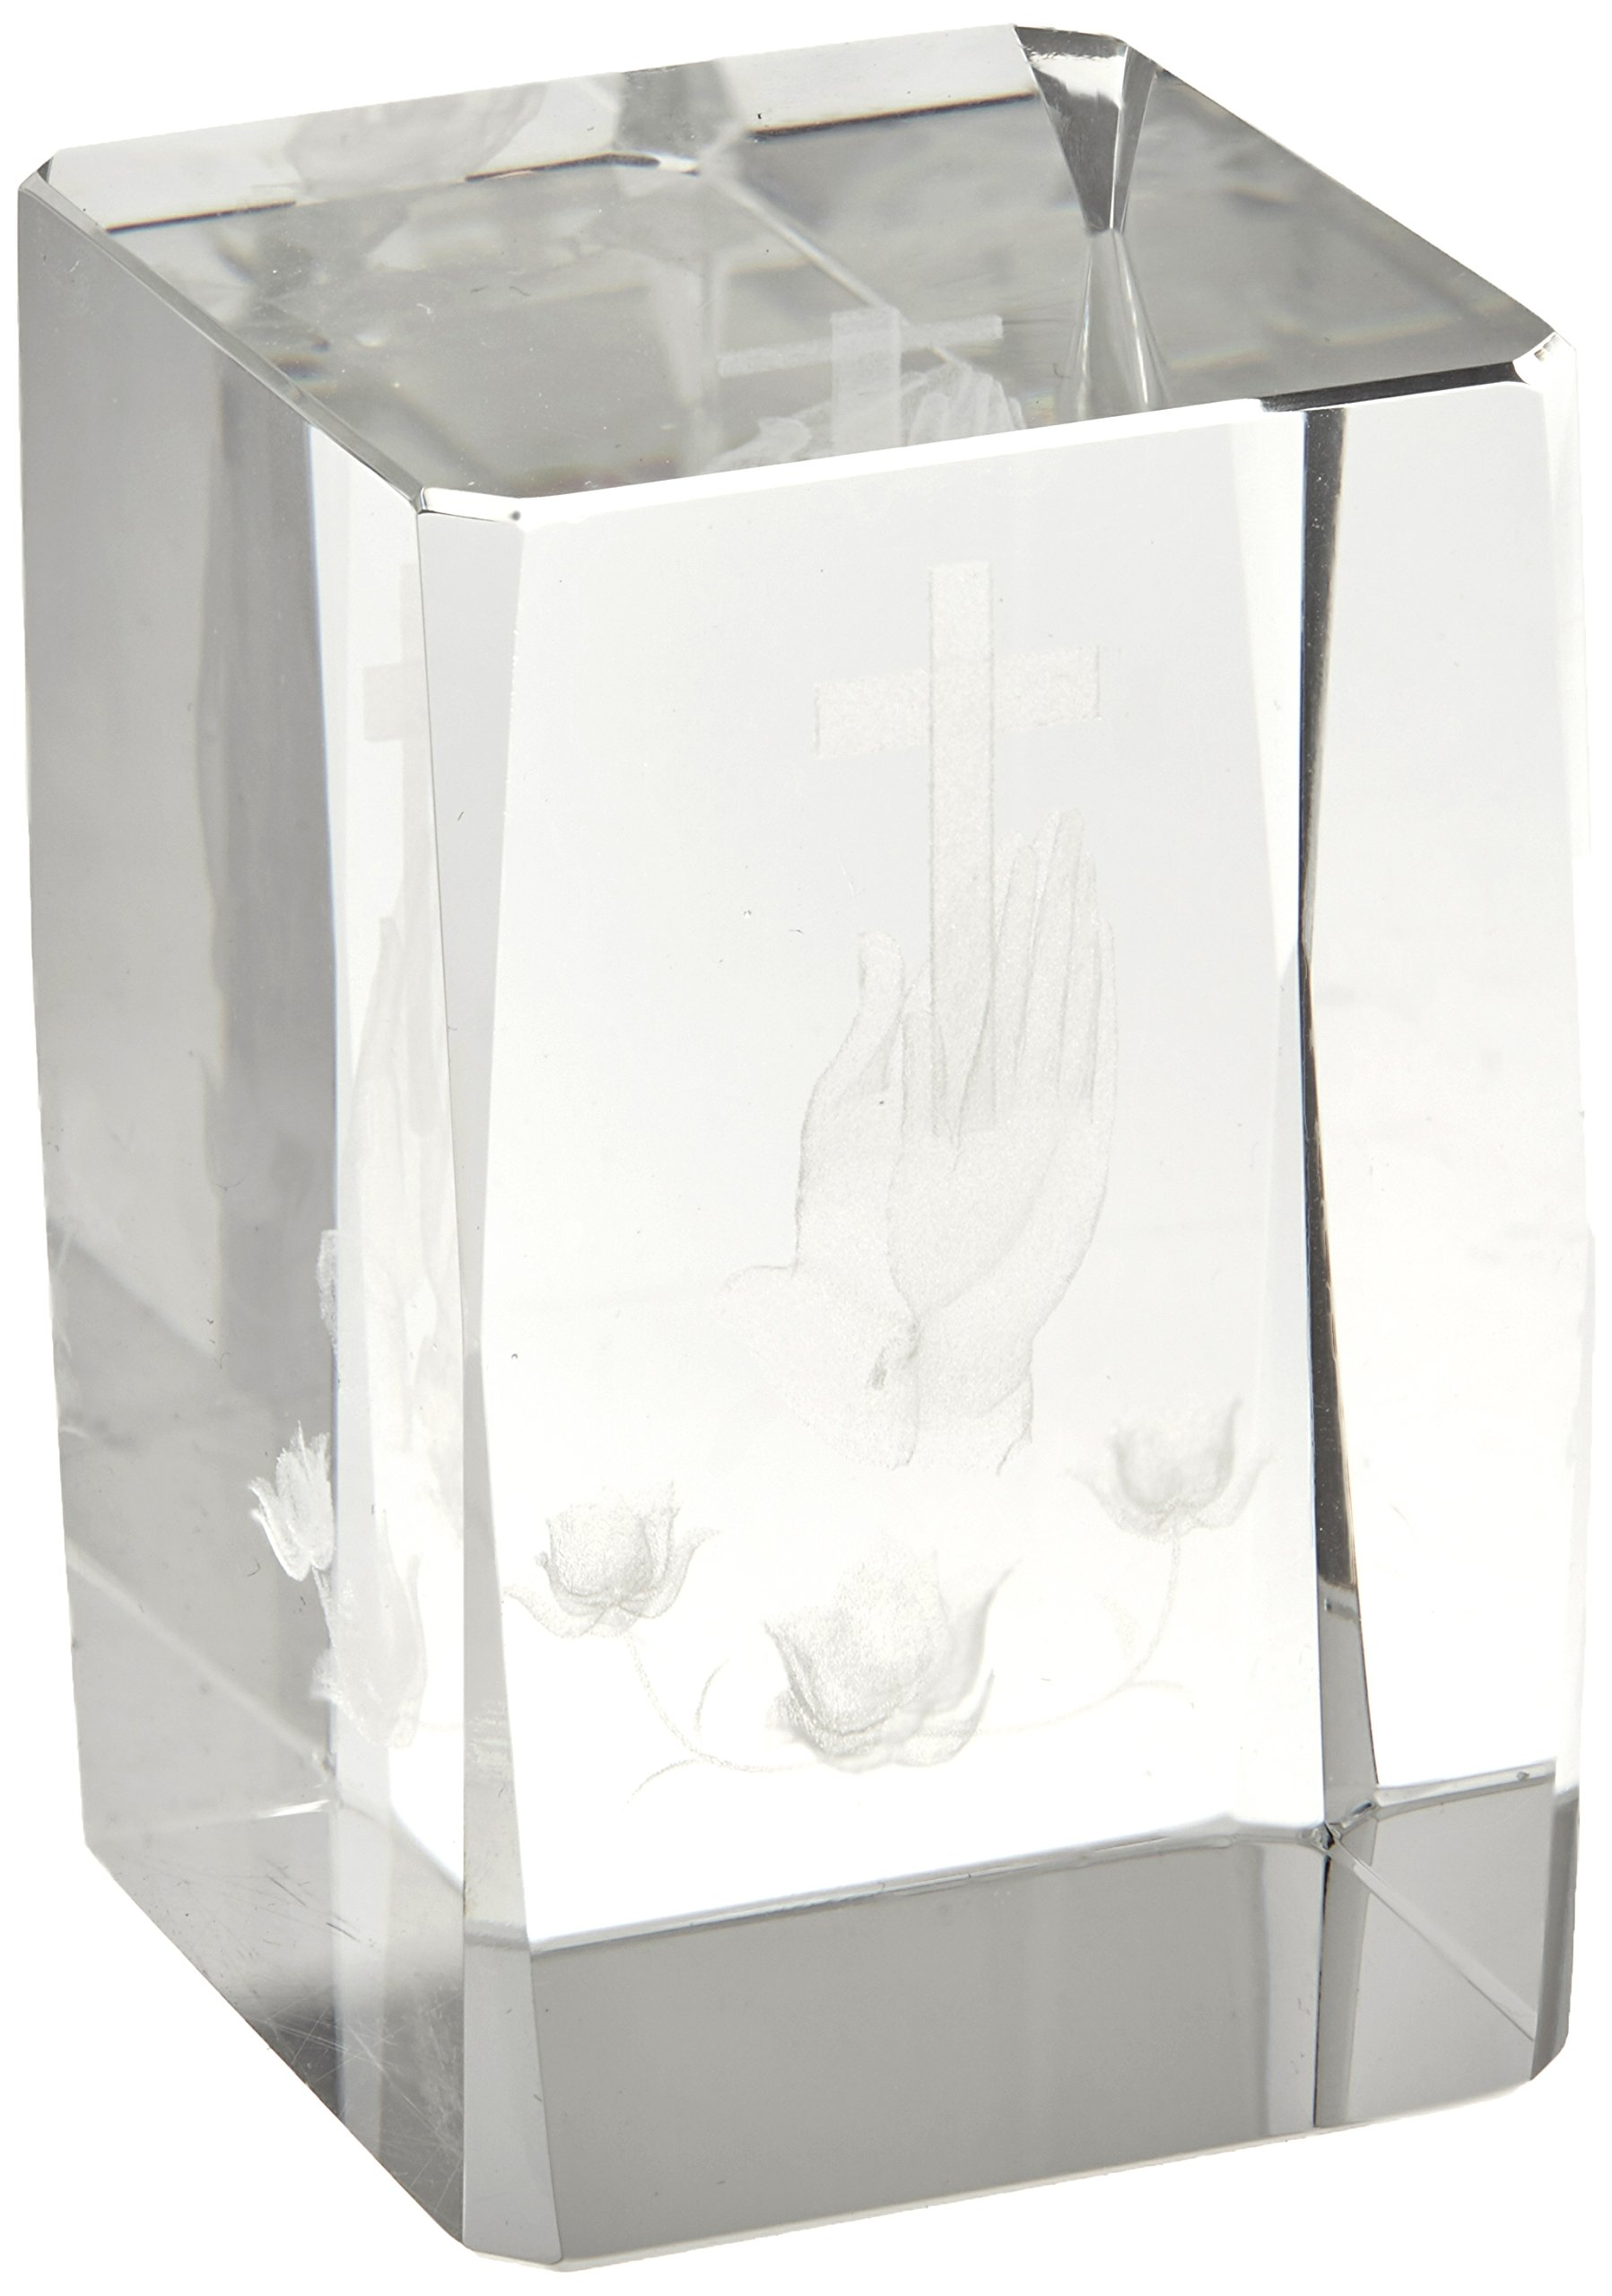 Artisano Designs ''Blessed Prayer'' Laser Etched Crystal Favor, Set of 4 by Artisano Designs